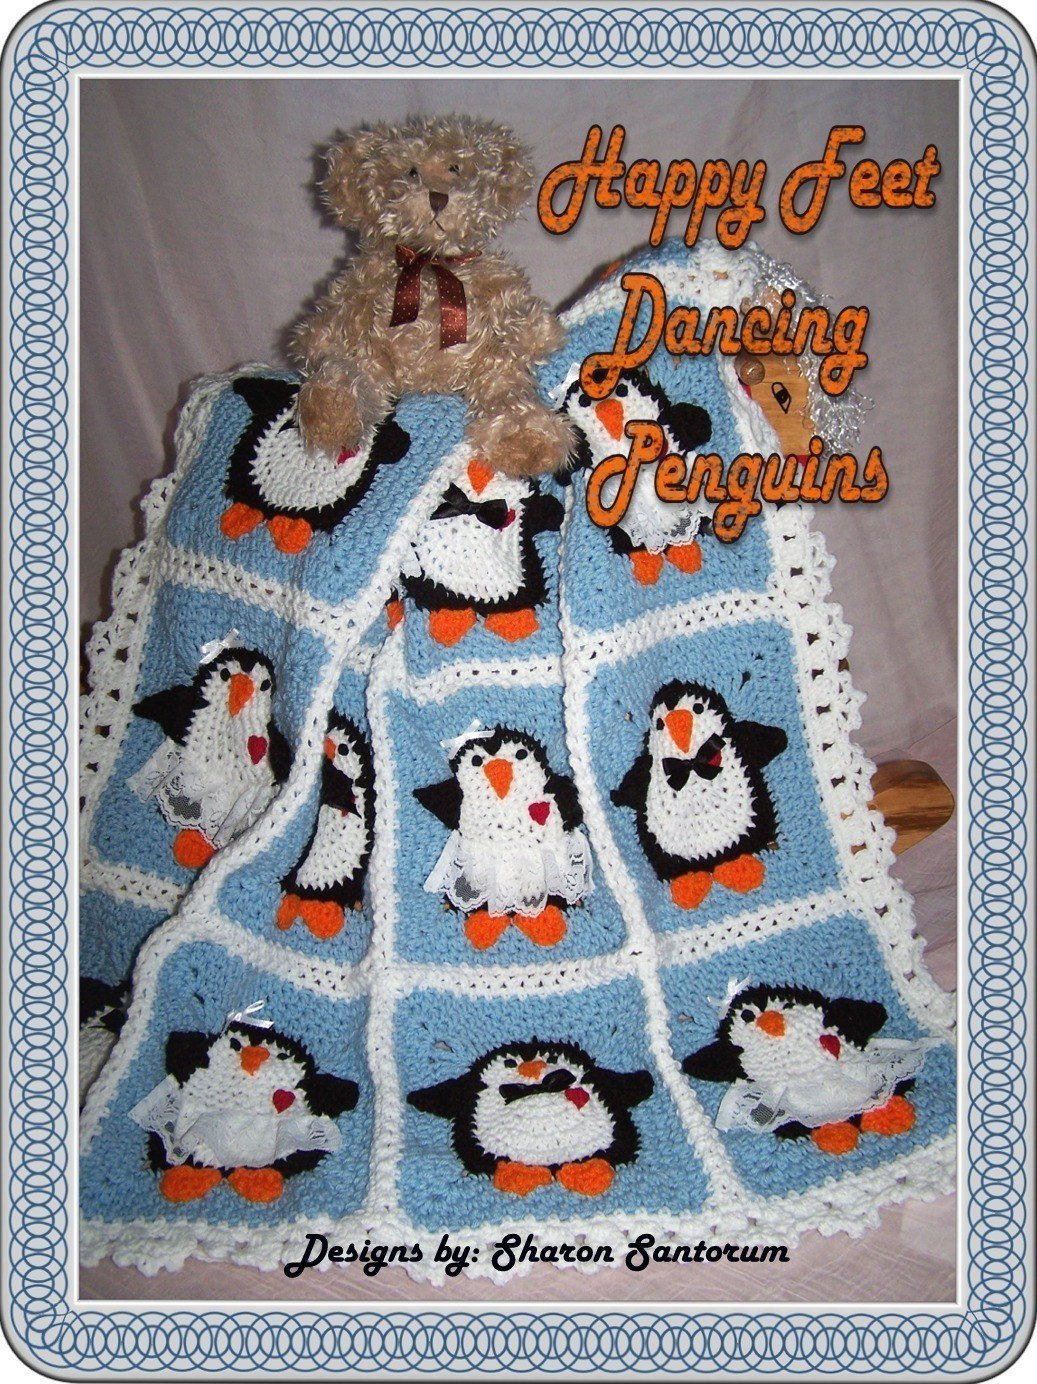 Baby Boy Crochet Blanket Patterns Beautiful Dancing Penguins Crochet Baby Afghan or Blanket Pattern Pdf Of Baby Boy Crochet Blanket Patterns New Free Baby Boy Crochet Blanket Patterns